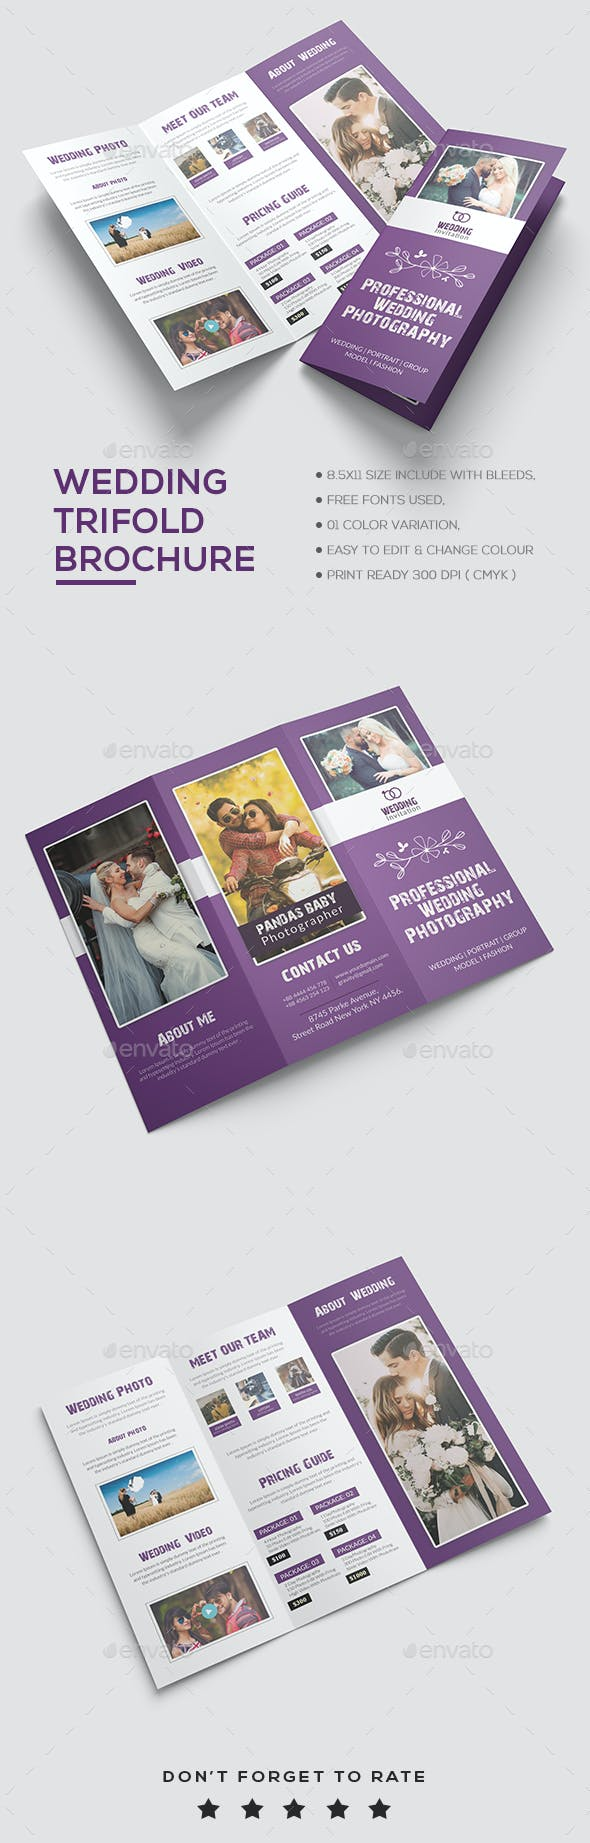 wedding brochure template by designhaunt graphicriver